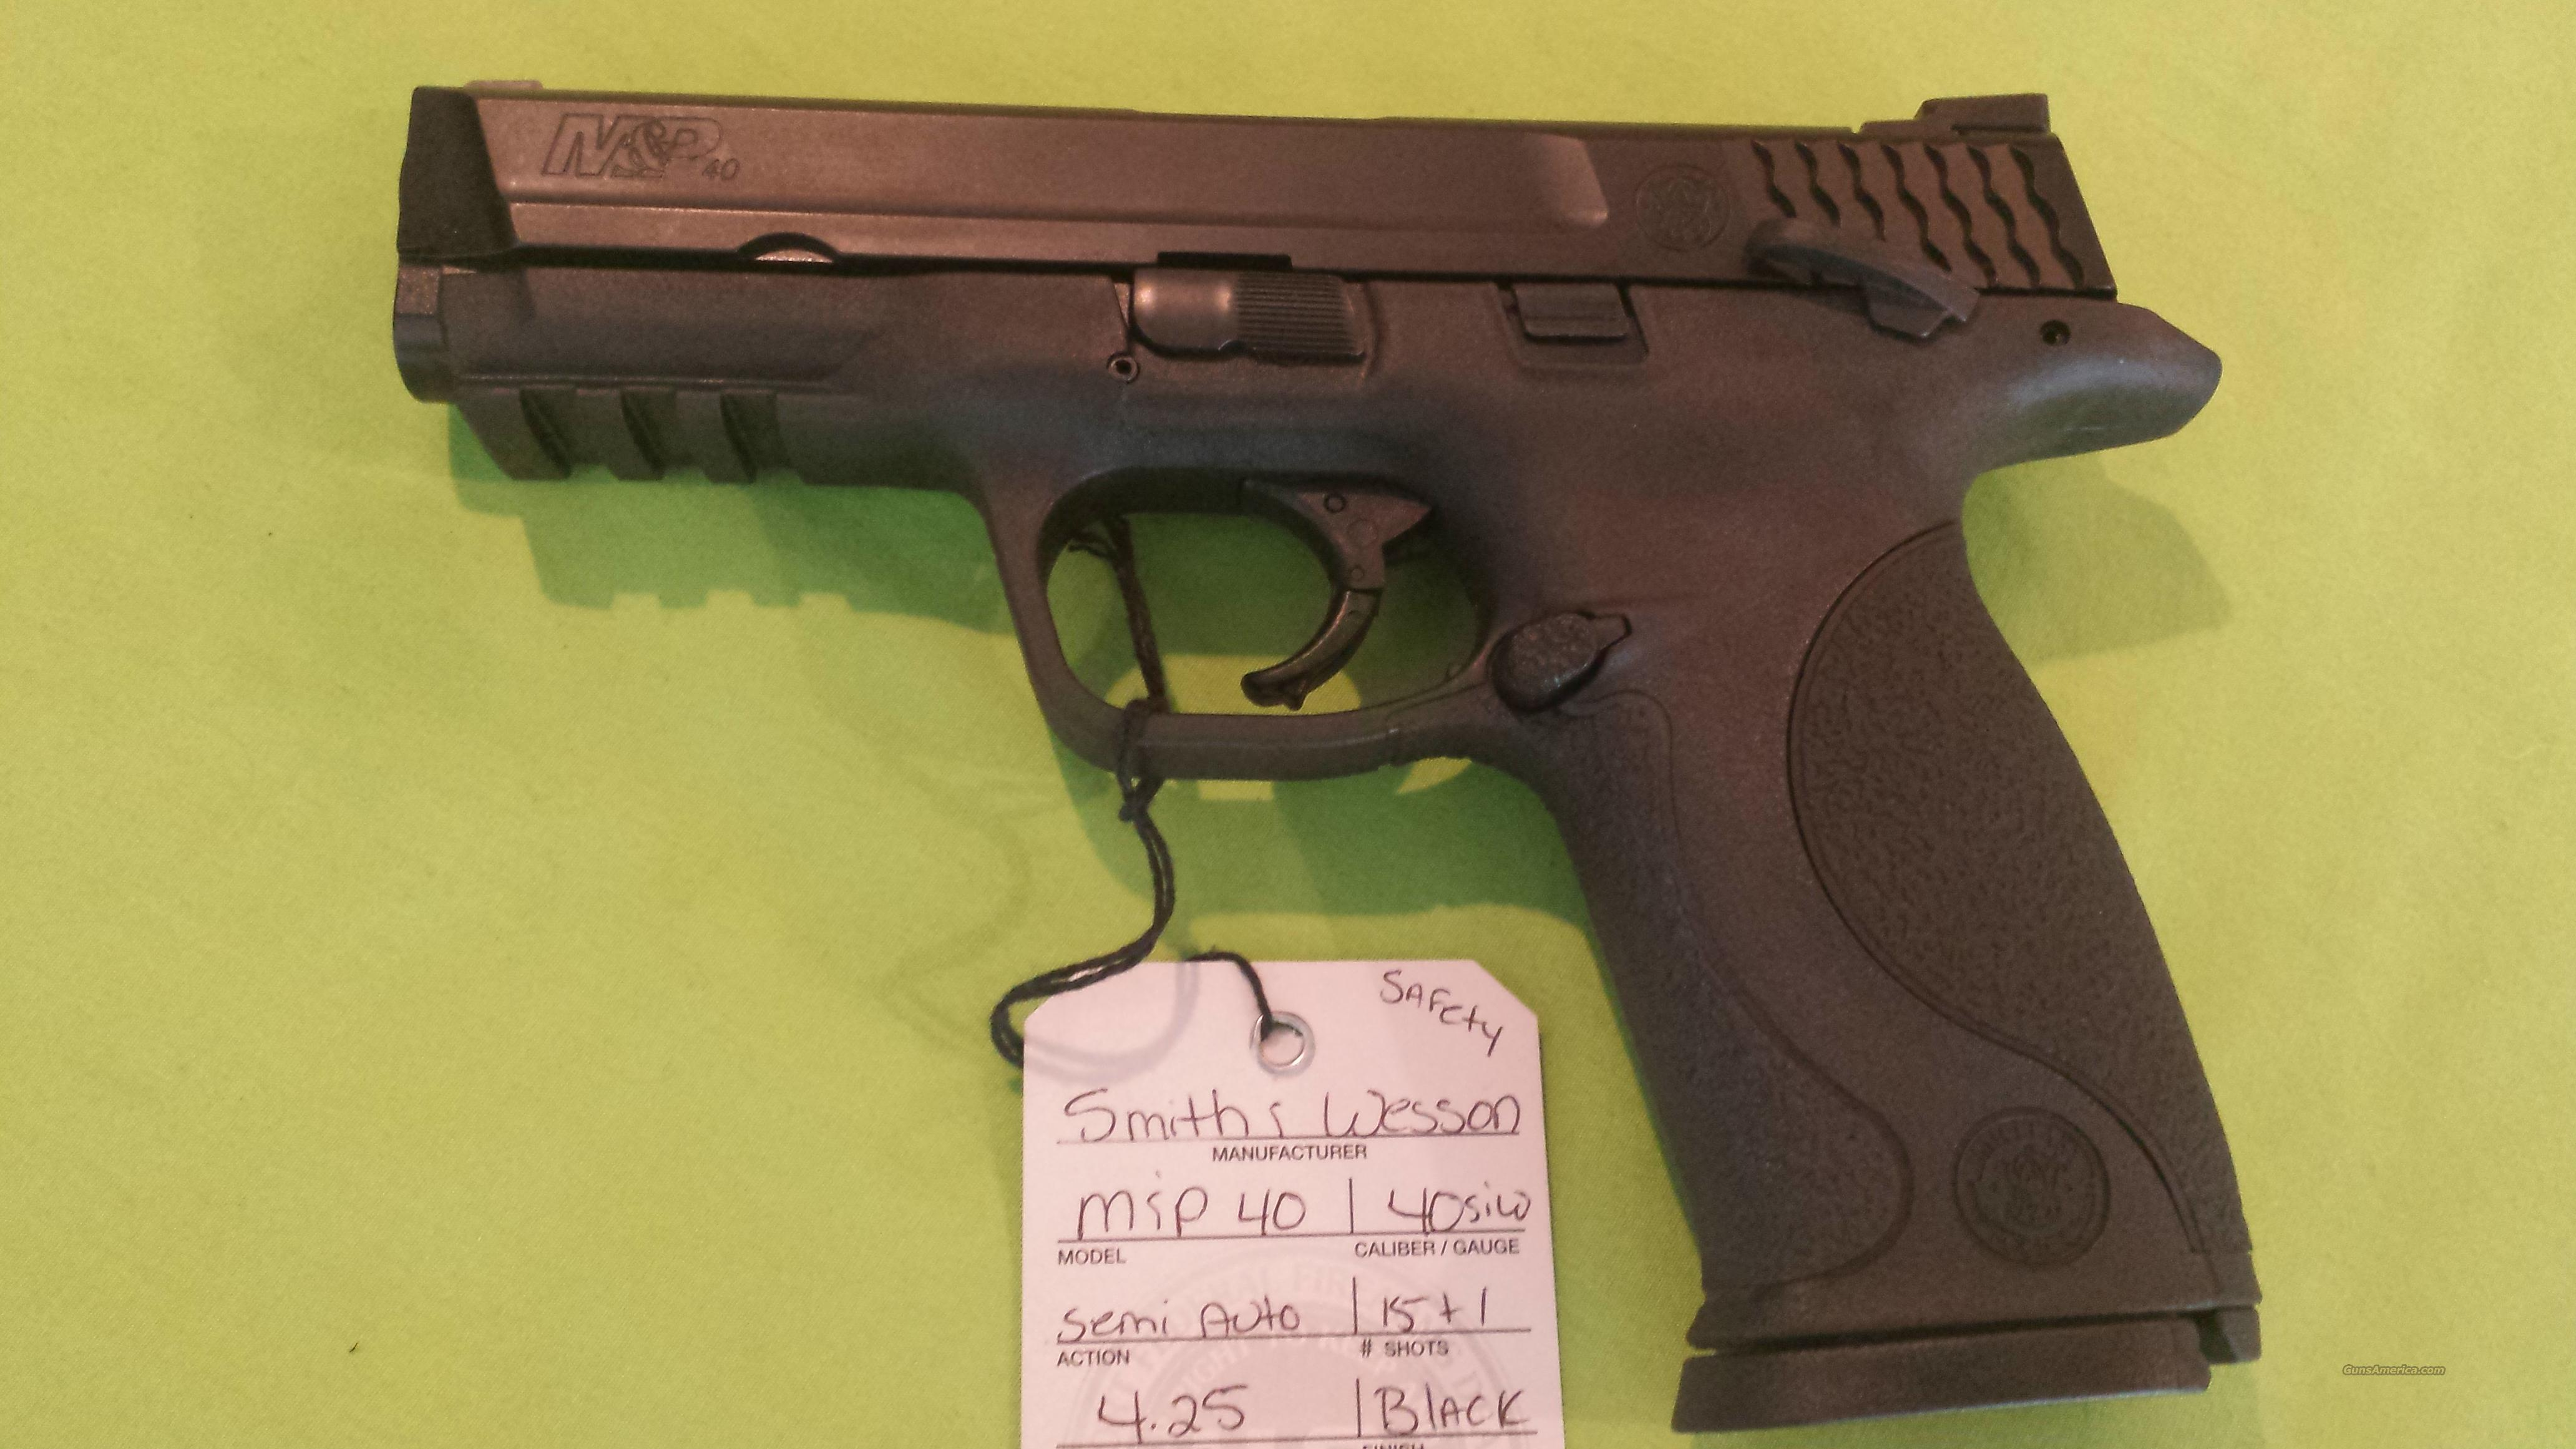 Smith & Wesson M&P 40 40S&W 4.25 15+1 S&W M&P SAFETY  Guns > Pistols > Smith & Wesson Pistols - Autos > Polymer Frame